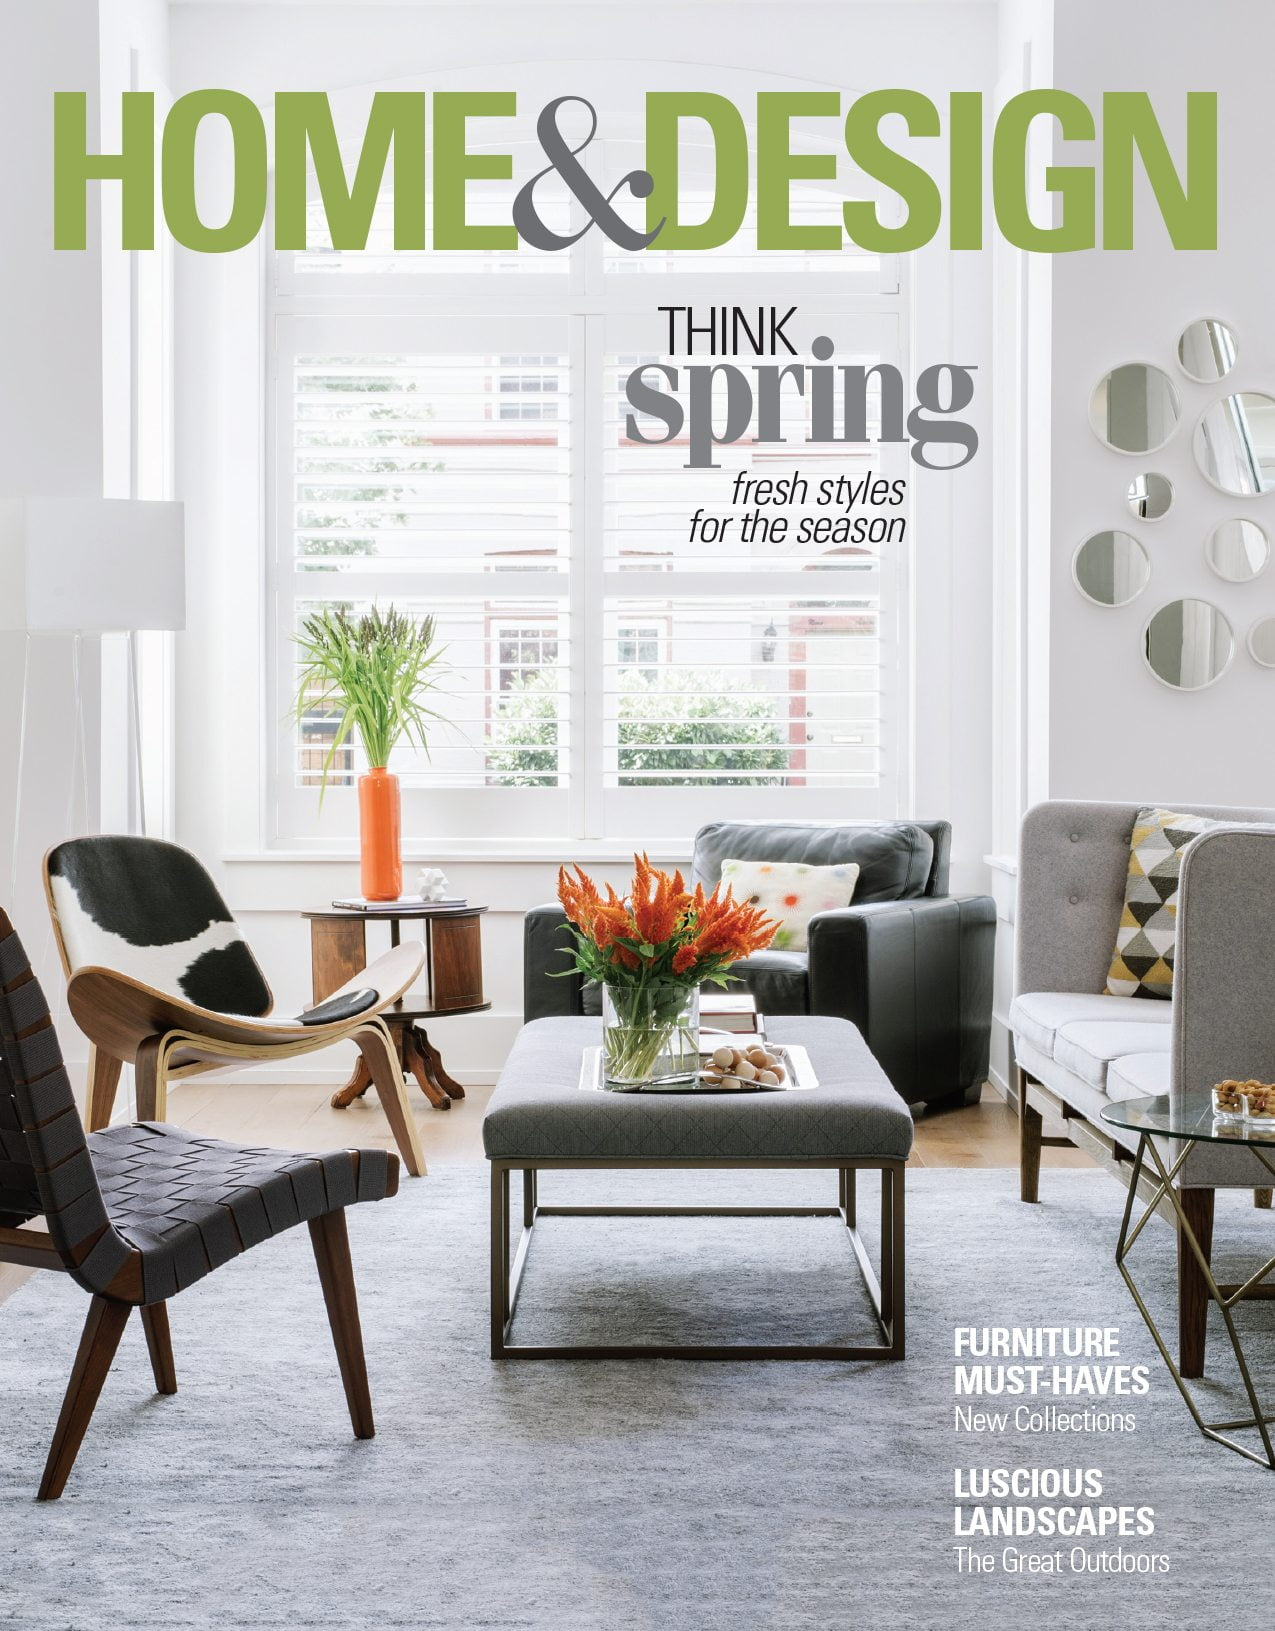 Best Kitchen Gallery: March April 2018 Archives Home Design Magazine of Magazines For Home Design  on rachelxblog.com